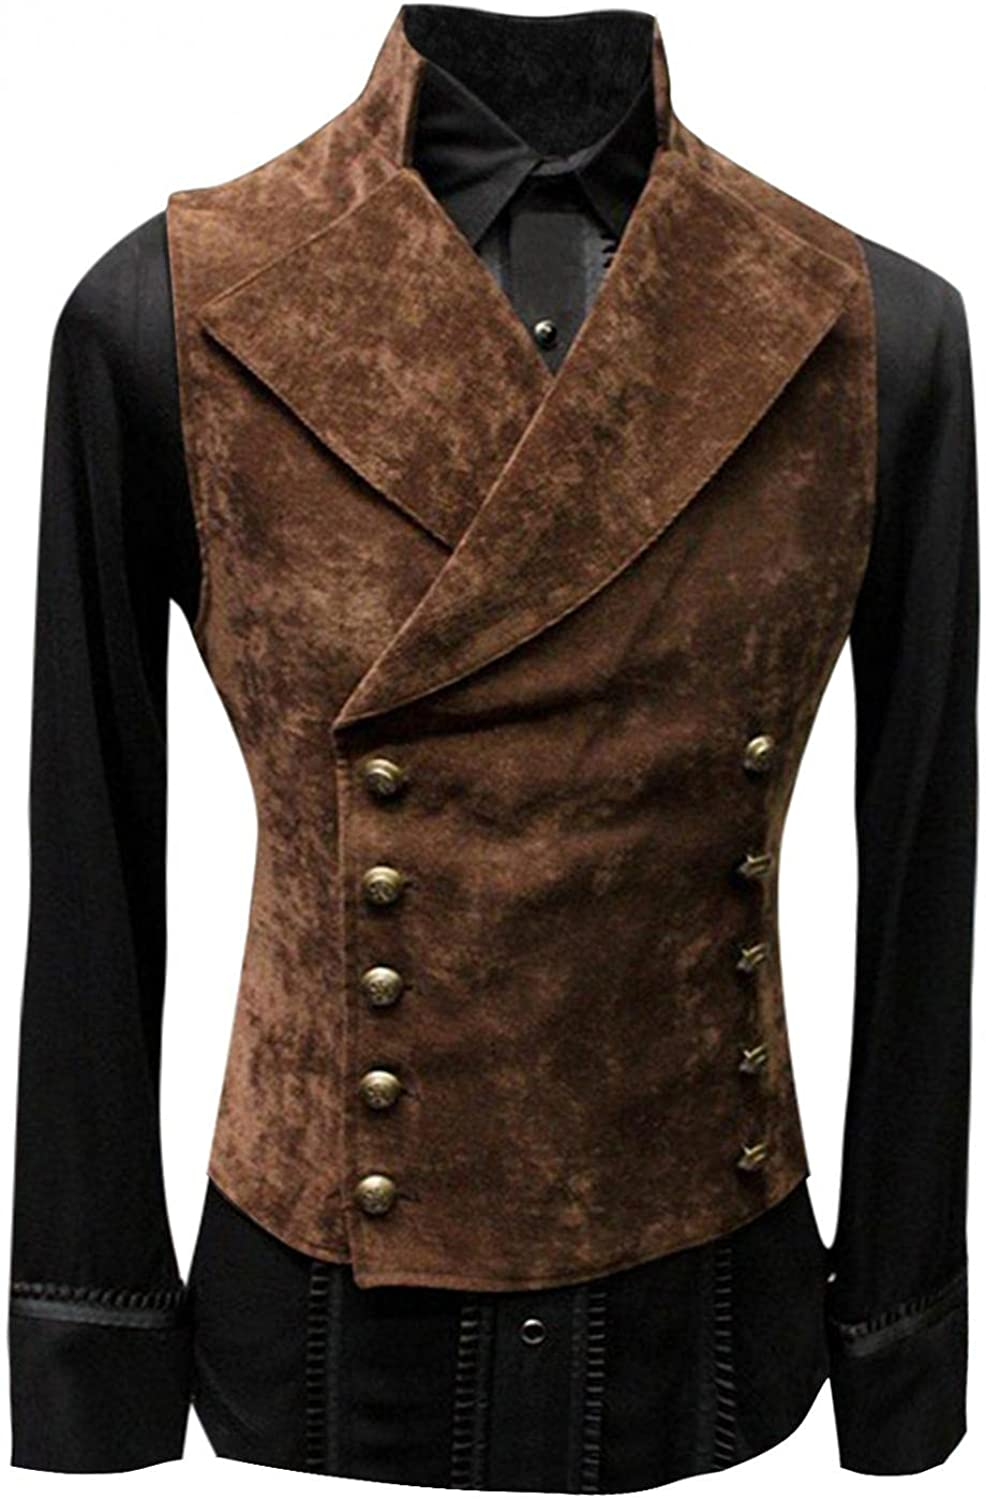 Men's Retro Leather Vest Long Sleeve Jacket, Stand-up Collar Solid Color Button Vest Motorbike Leather Outerwear